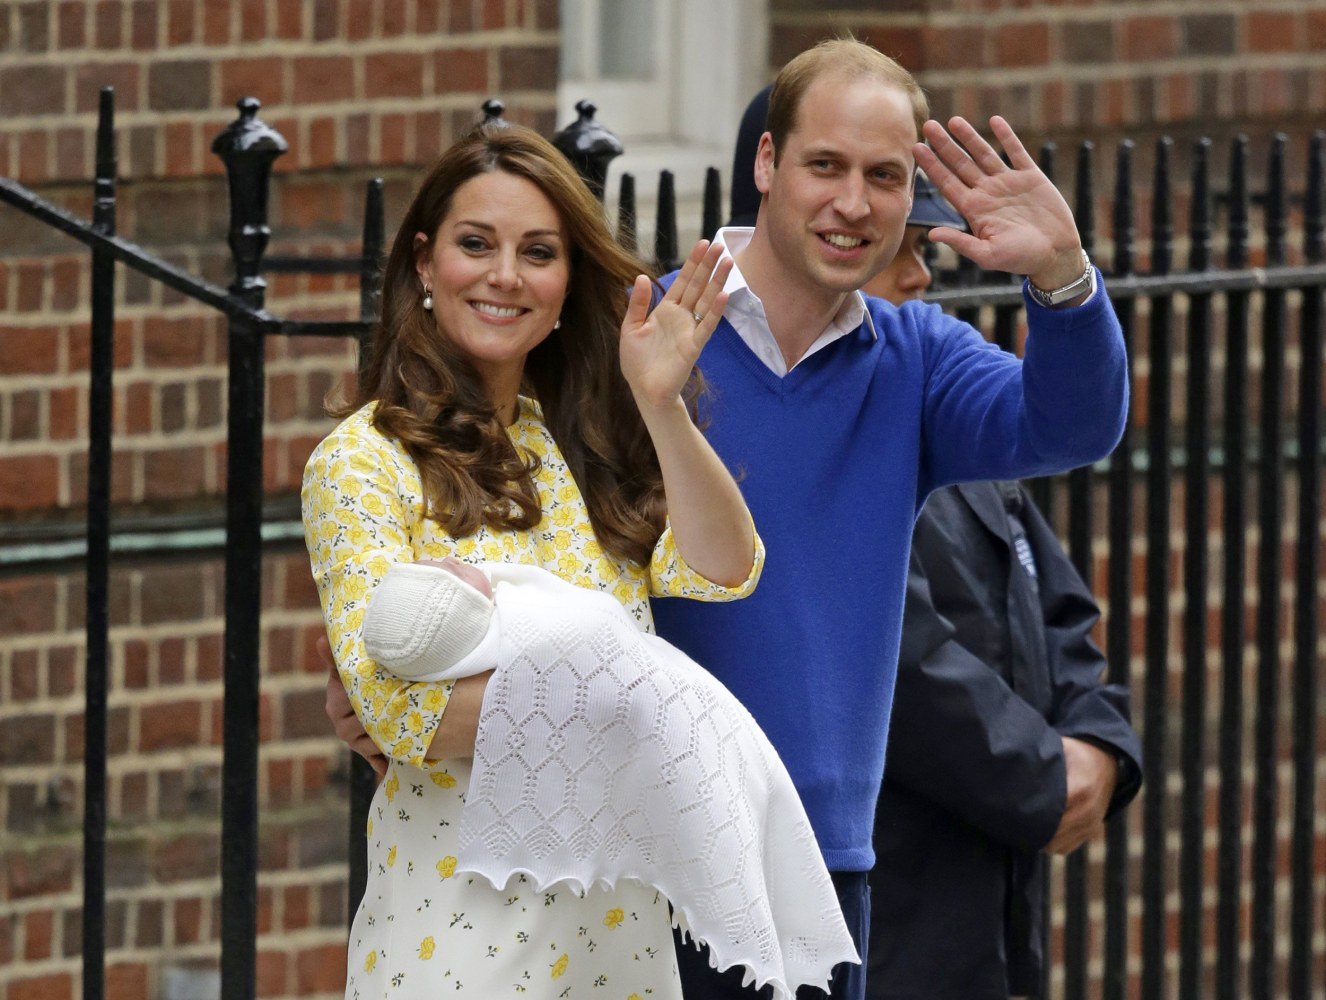 William And Kate Residence Kate And William Leave Hospital With New Baby Girl Nbc News